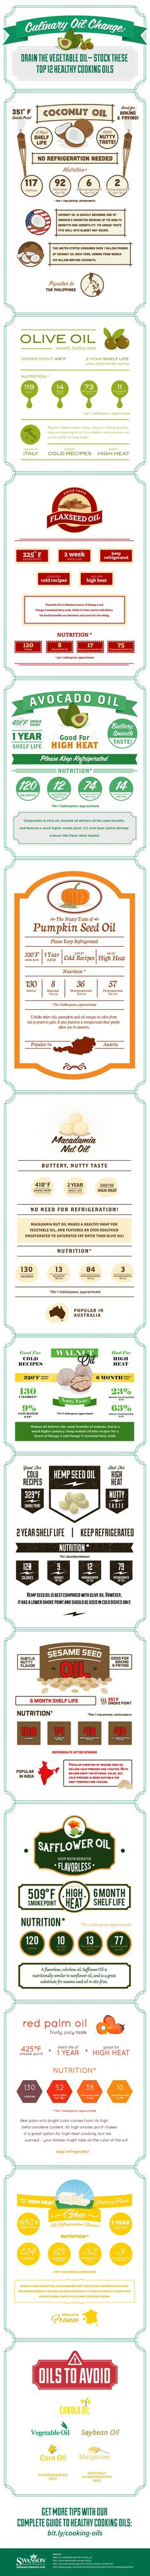 Top Healthy Cooking Oils Infographic – Pin now to Save. This  complete comparison guide to the top healthy cooking oils includes health benefits, tips, recipes & video demos.